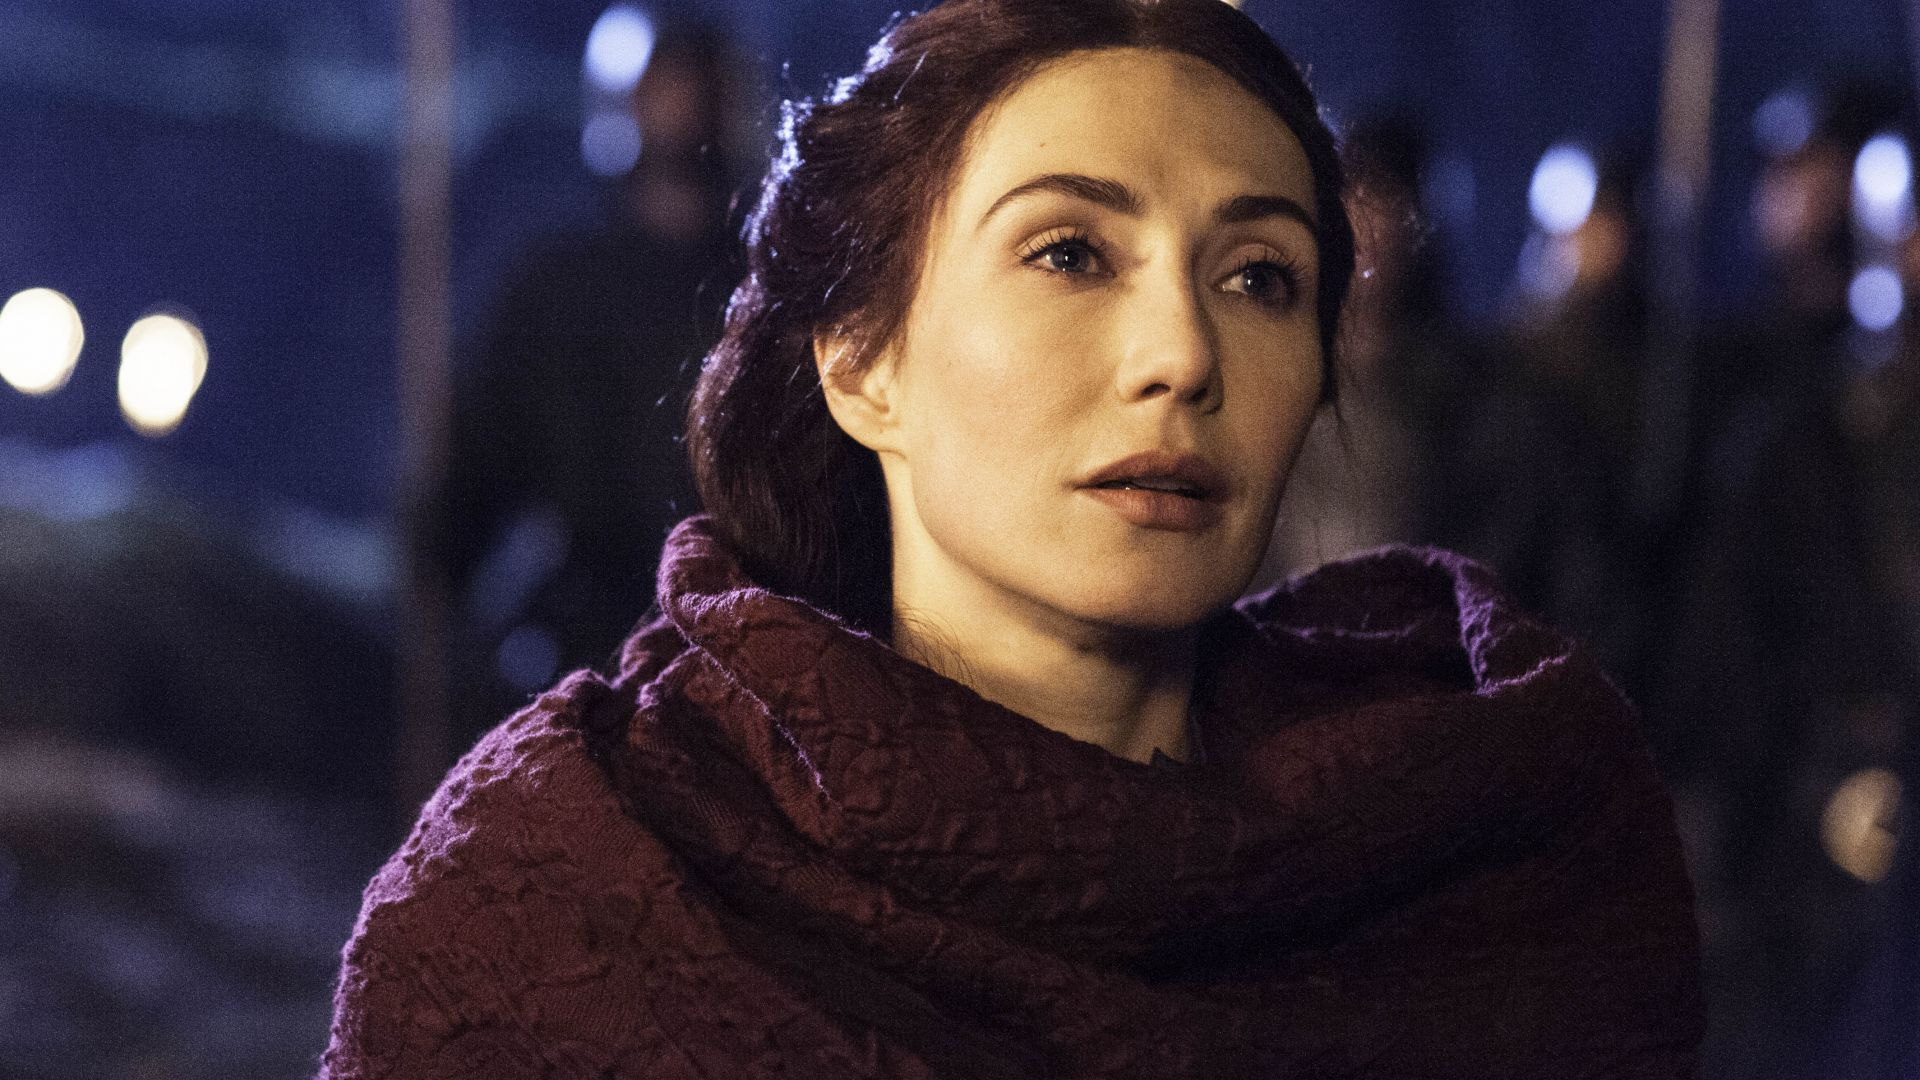 Game of Thrones: What Its Like to Be Melisandre the Red